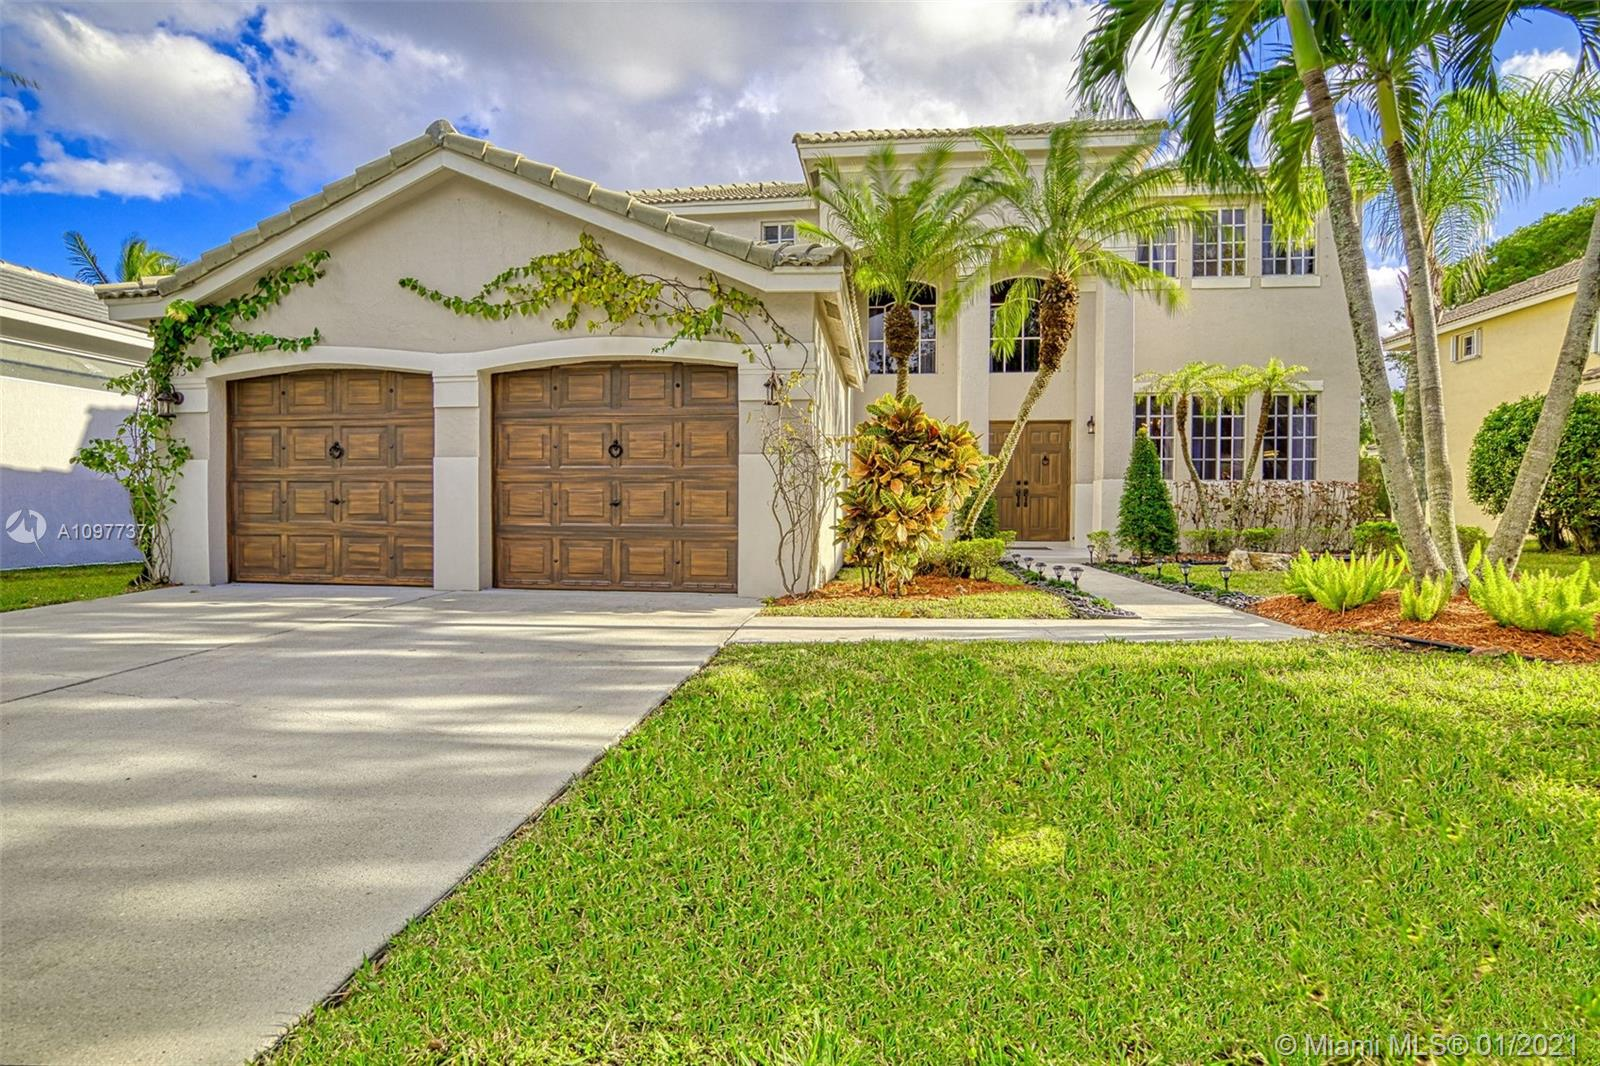 GORGEOUS HOME IN THE UPSCALE CITY OF WESTON! THIS WELL-KEPT HOME HAS 5 BEDROOMS AND 3 FULL BATHROOM, GUEST OR IN-LAW BEDROOM ON THE FIRST FLOOR. SITTING ON A 7,377 LOT, GREAT FOR A BIG FAMILY! COMPLETELY RENOVATED IN 2017. THIS ELEGANT HOME FEATURES SPLIT OPEN FLOOR PLAN IN LIVING AREAS, KITCHEN WITH WOOD CABINETS, GRANITE COUNTER TOPS AND TOP OF THE LINE SS APPLIANCES. DUAL AC SYSTEM WITH ADDED UV LIGHTS THAT STERILIZE, DEODORIZES AND PURIFIES THE AIR. TRAVERTINE AND MARBLE/ONYX BATHS, FRAMELESS SHOWER DOORS WITH MASSAGE SYSTEM IN ALL BATHS. WATER RESISTANCE WOOD-BASE FLOORS THROUGHOUT THE HOUSE AND FAUX WOOD PAINTED GARAGE AND FRONT DOOR. RELAXING GARDEN VIEW,  SURROUNDED BY LOVELY TREES AND WELL MAINTAINED LUSH TROPICAL LANDSCAPE DESIGN. COMM POOL AND RATED A + SCHOOLS, BRING AN OFFER.